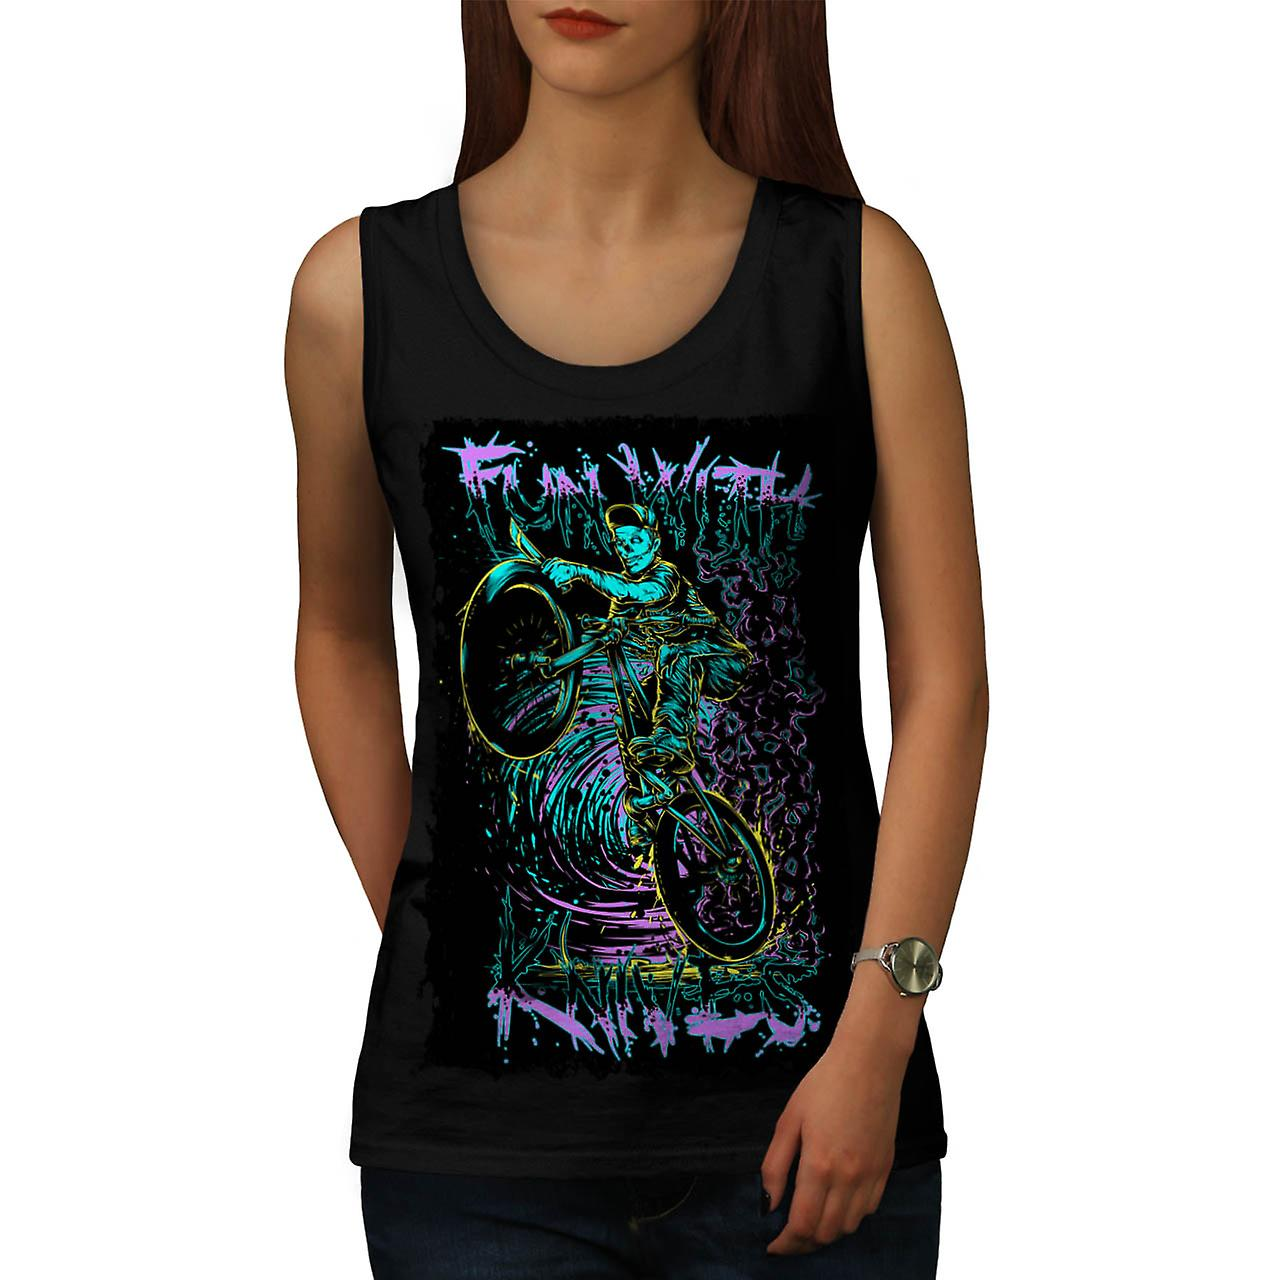 Fun With Knives Rider Zombie Bike Women Black Tank Top | Wellcoda